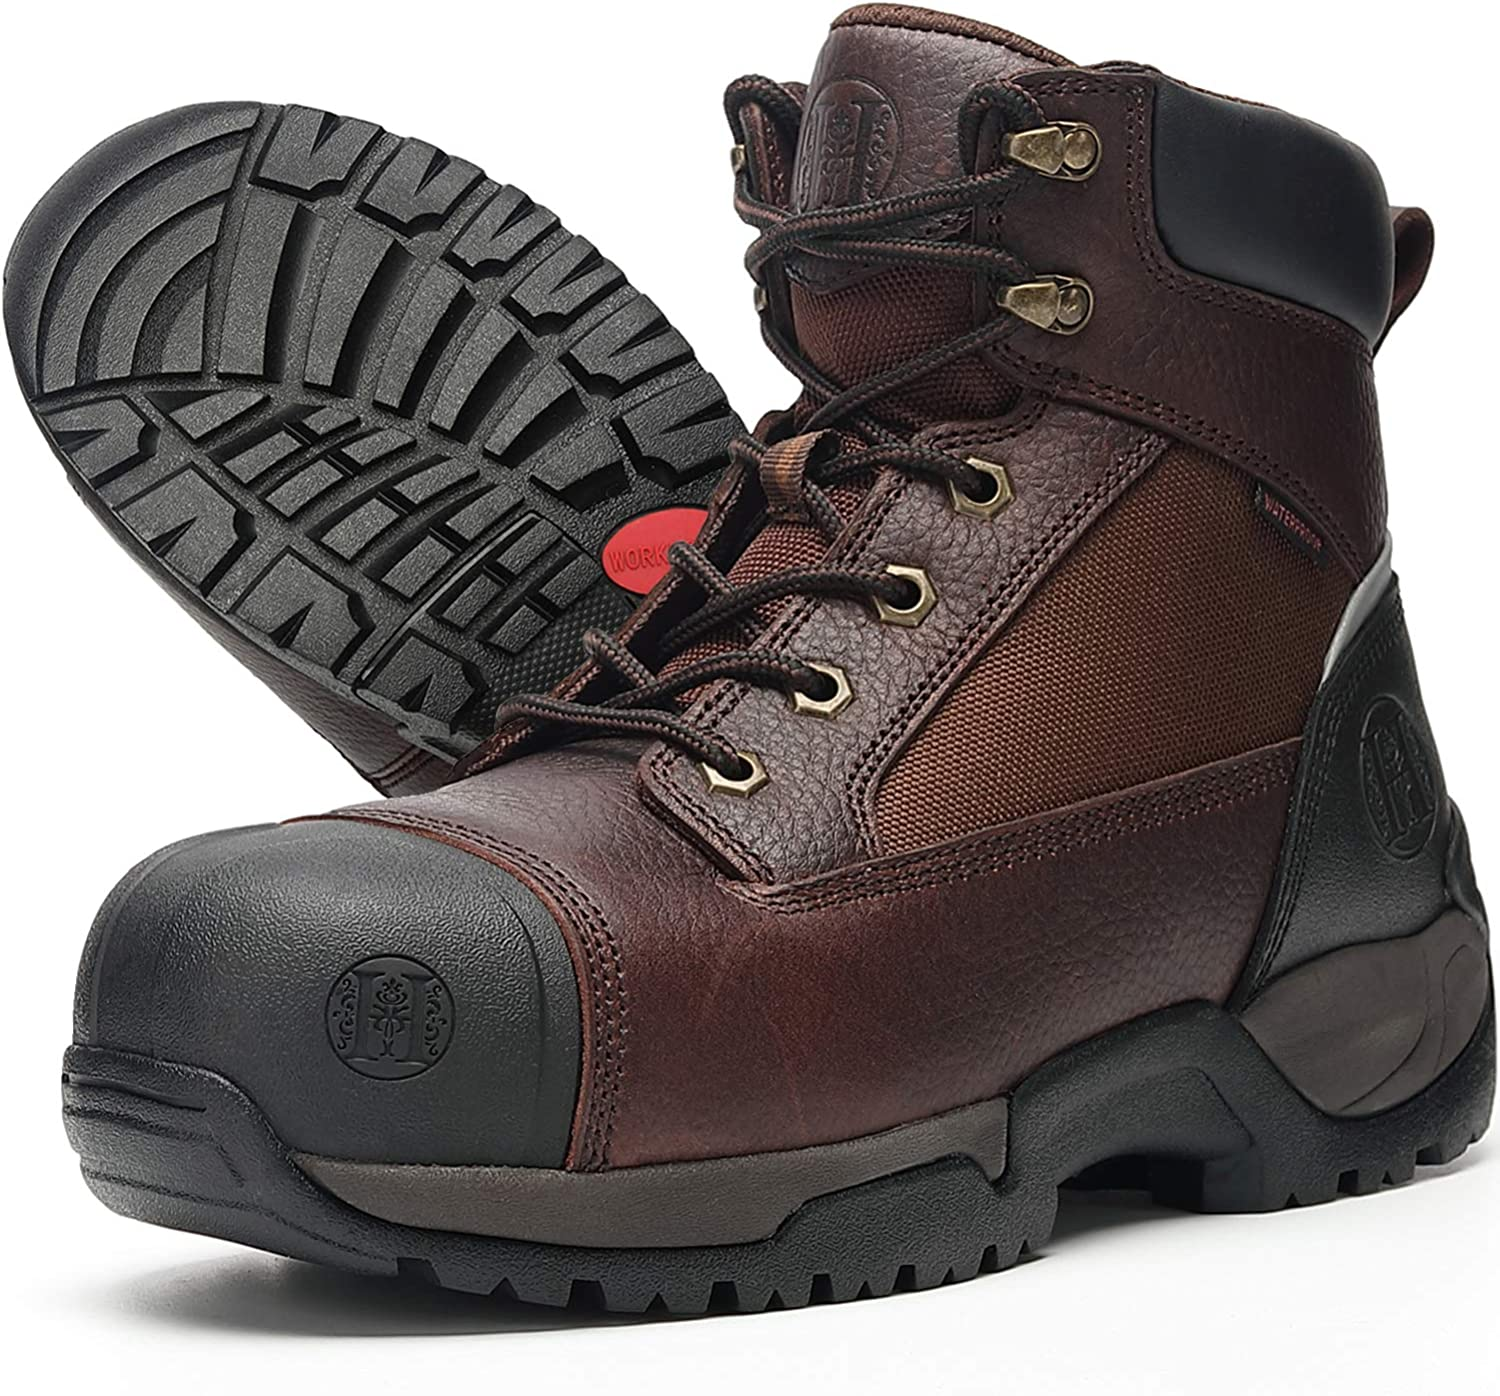 WAMSOFT Work Boots for Men 6